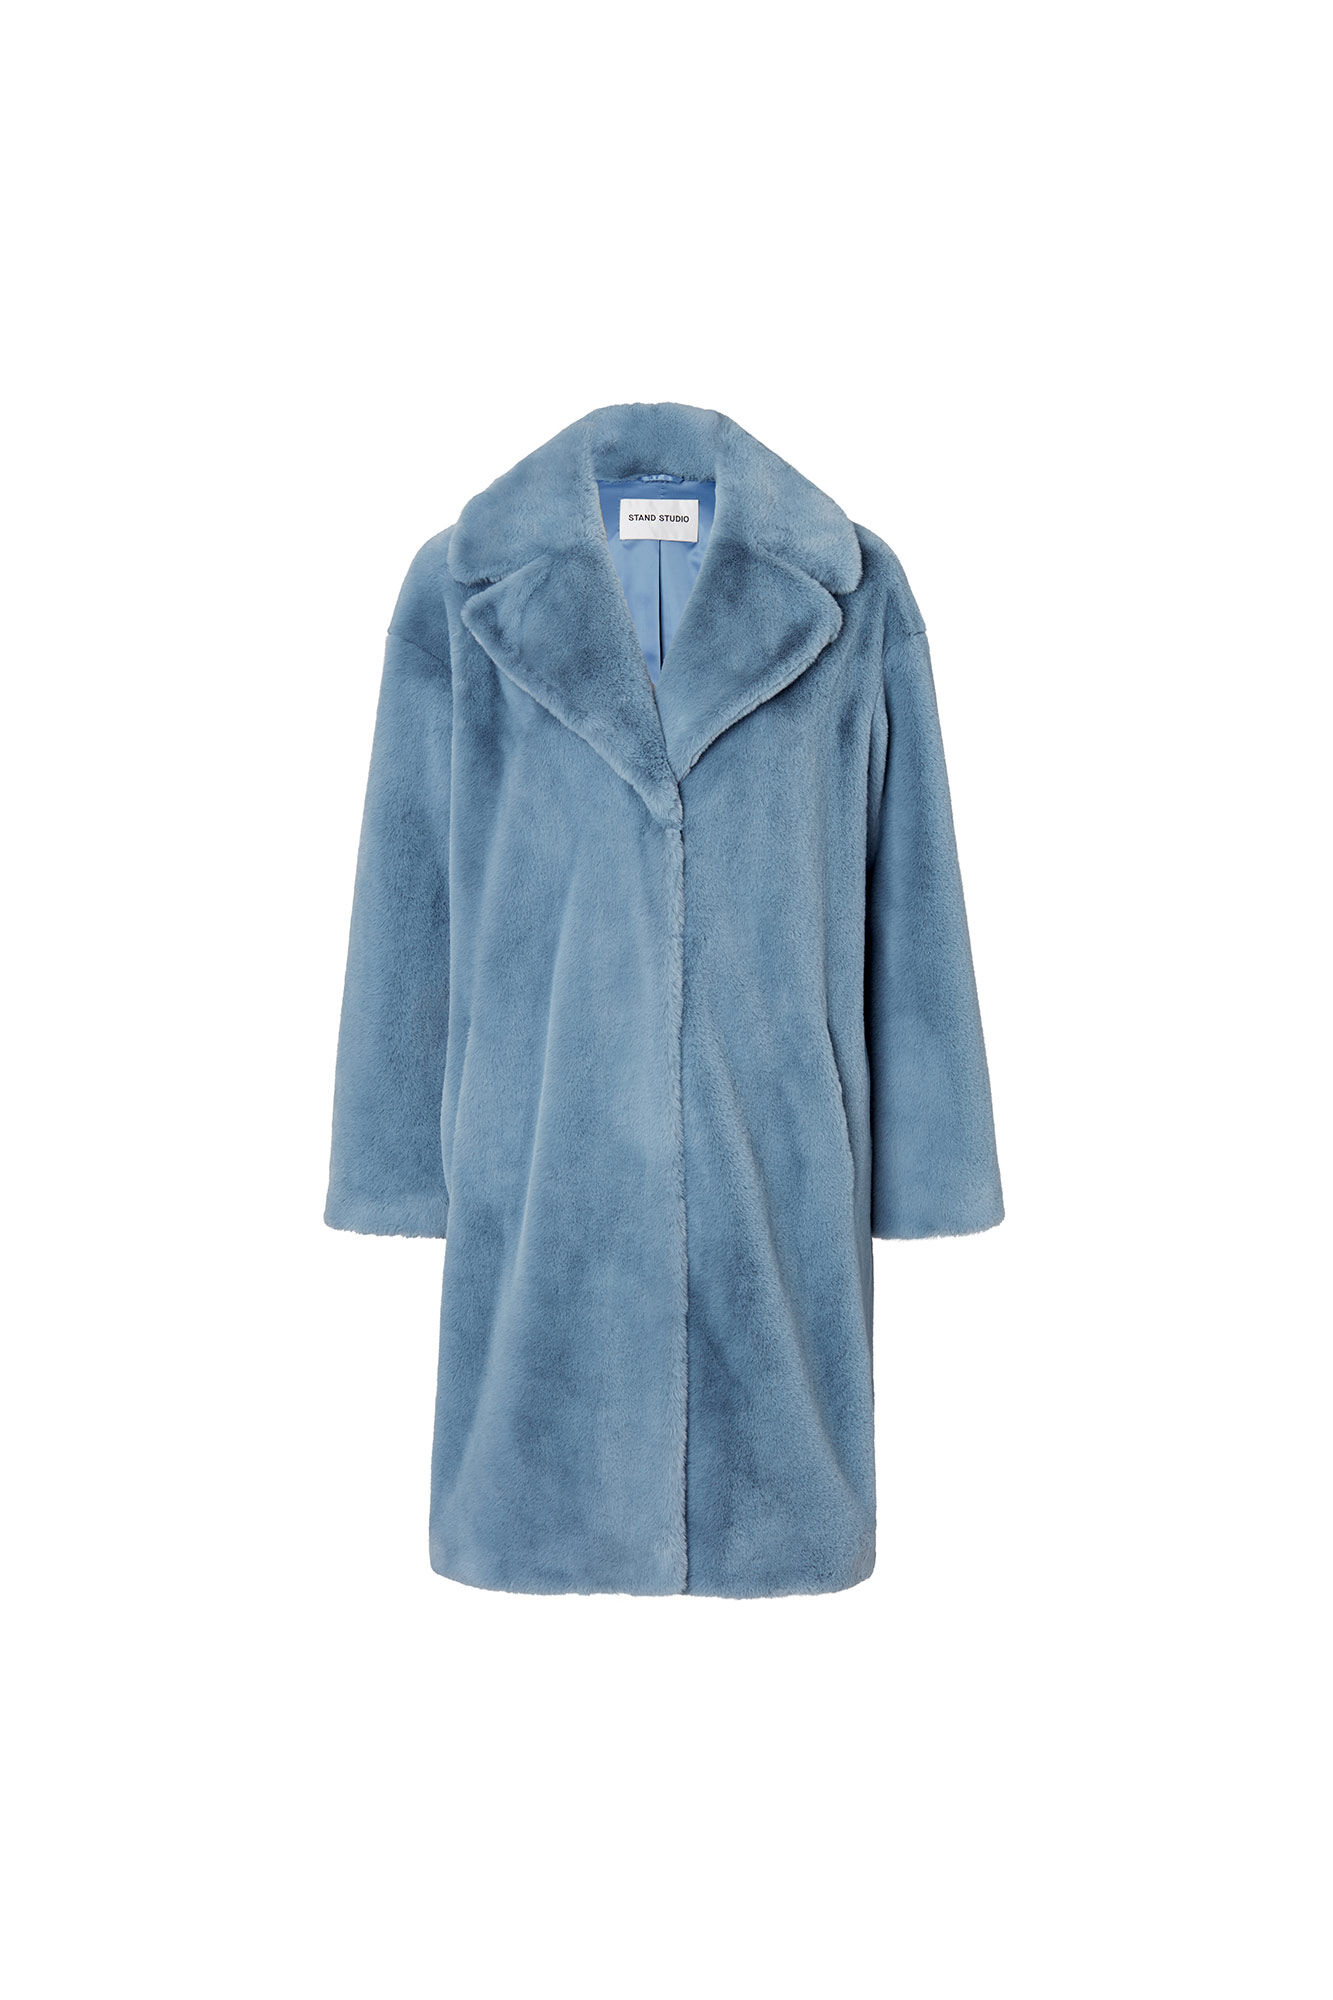 Camille coat 60664-8950, STEEL BLUE